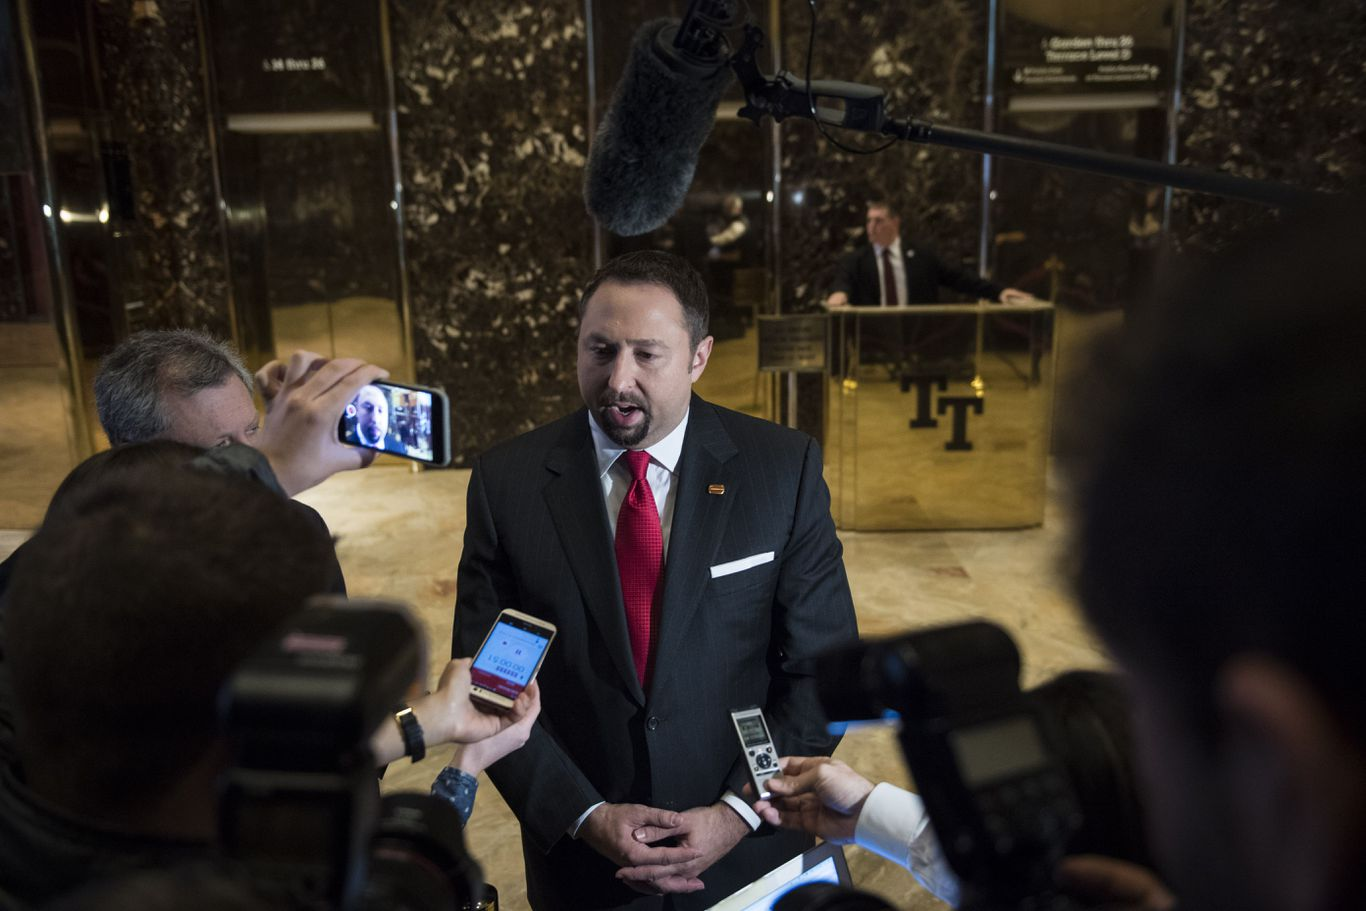 Trump's new wakeup call: Campaign operative Jason Miller gets him ready for the day thumbnail